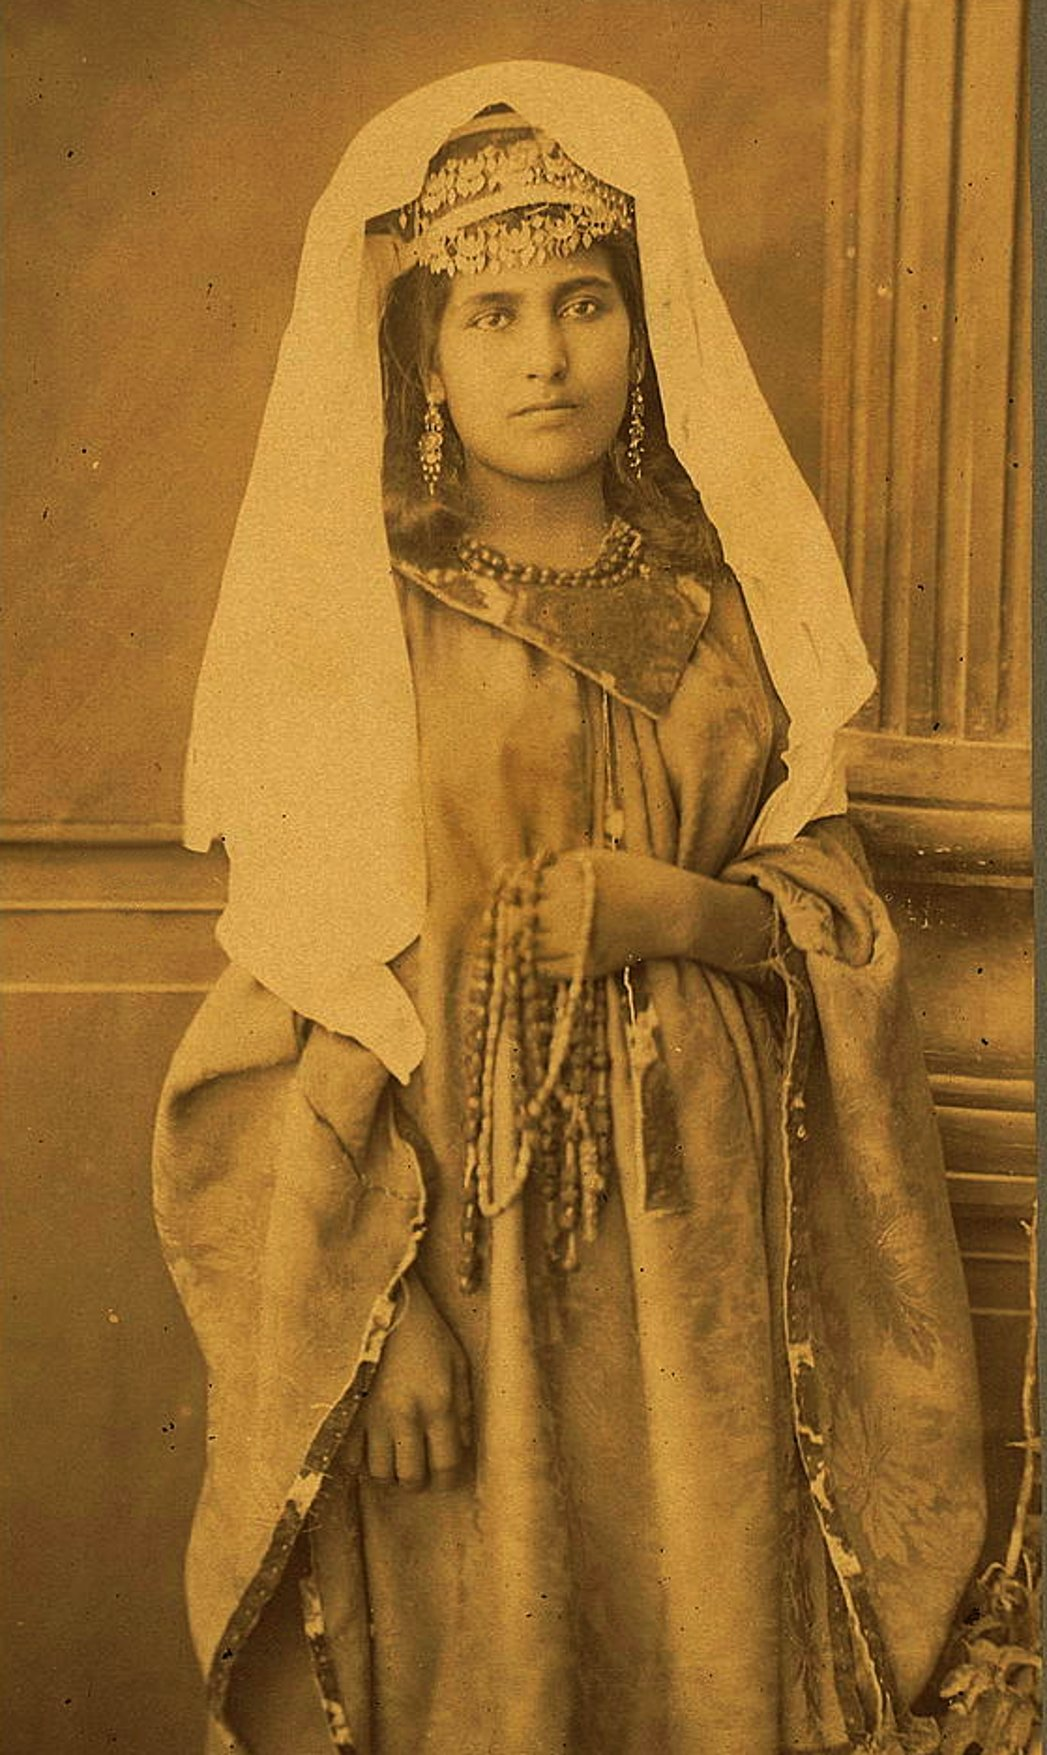 Bethlehem - بيت لحم : Women of Bethlehem 98 - (late 19th, early 20th c.) 1880s